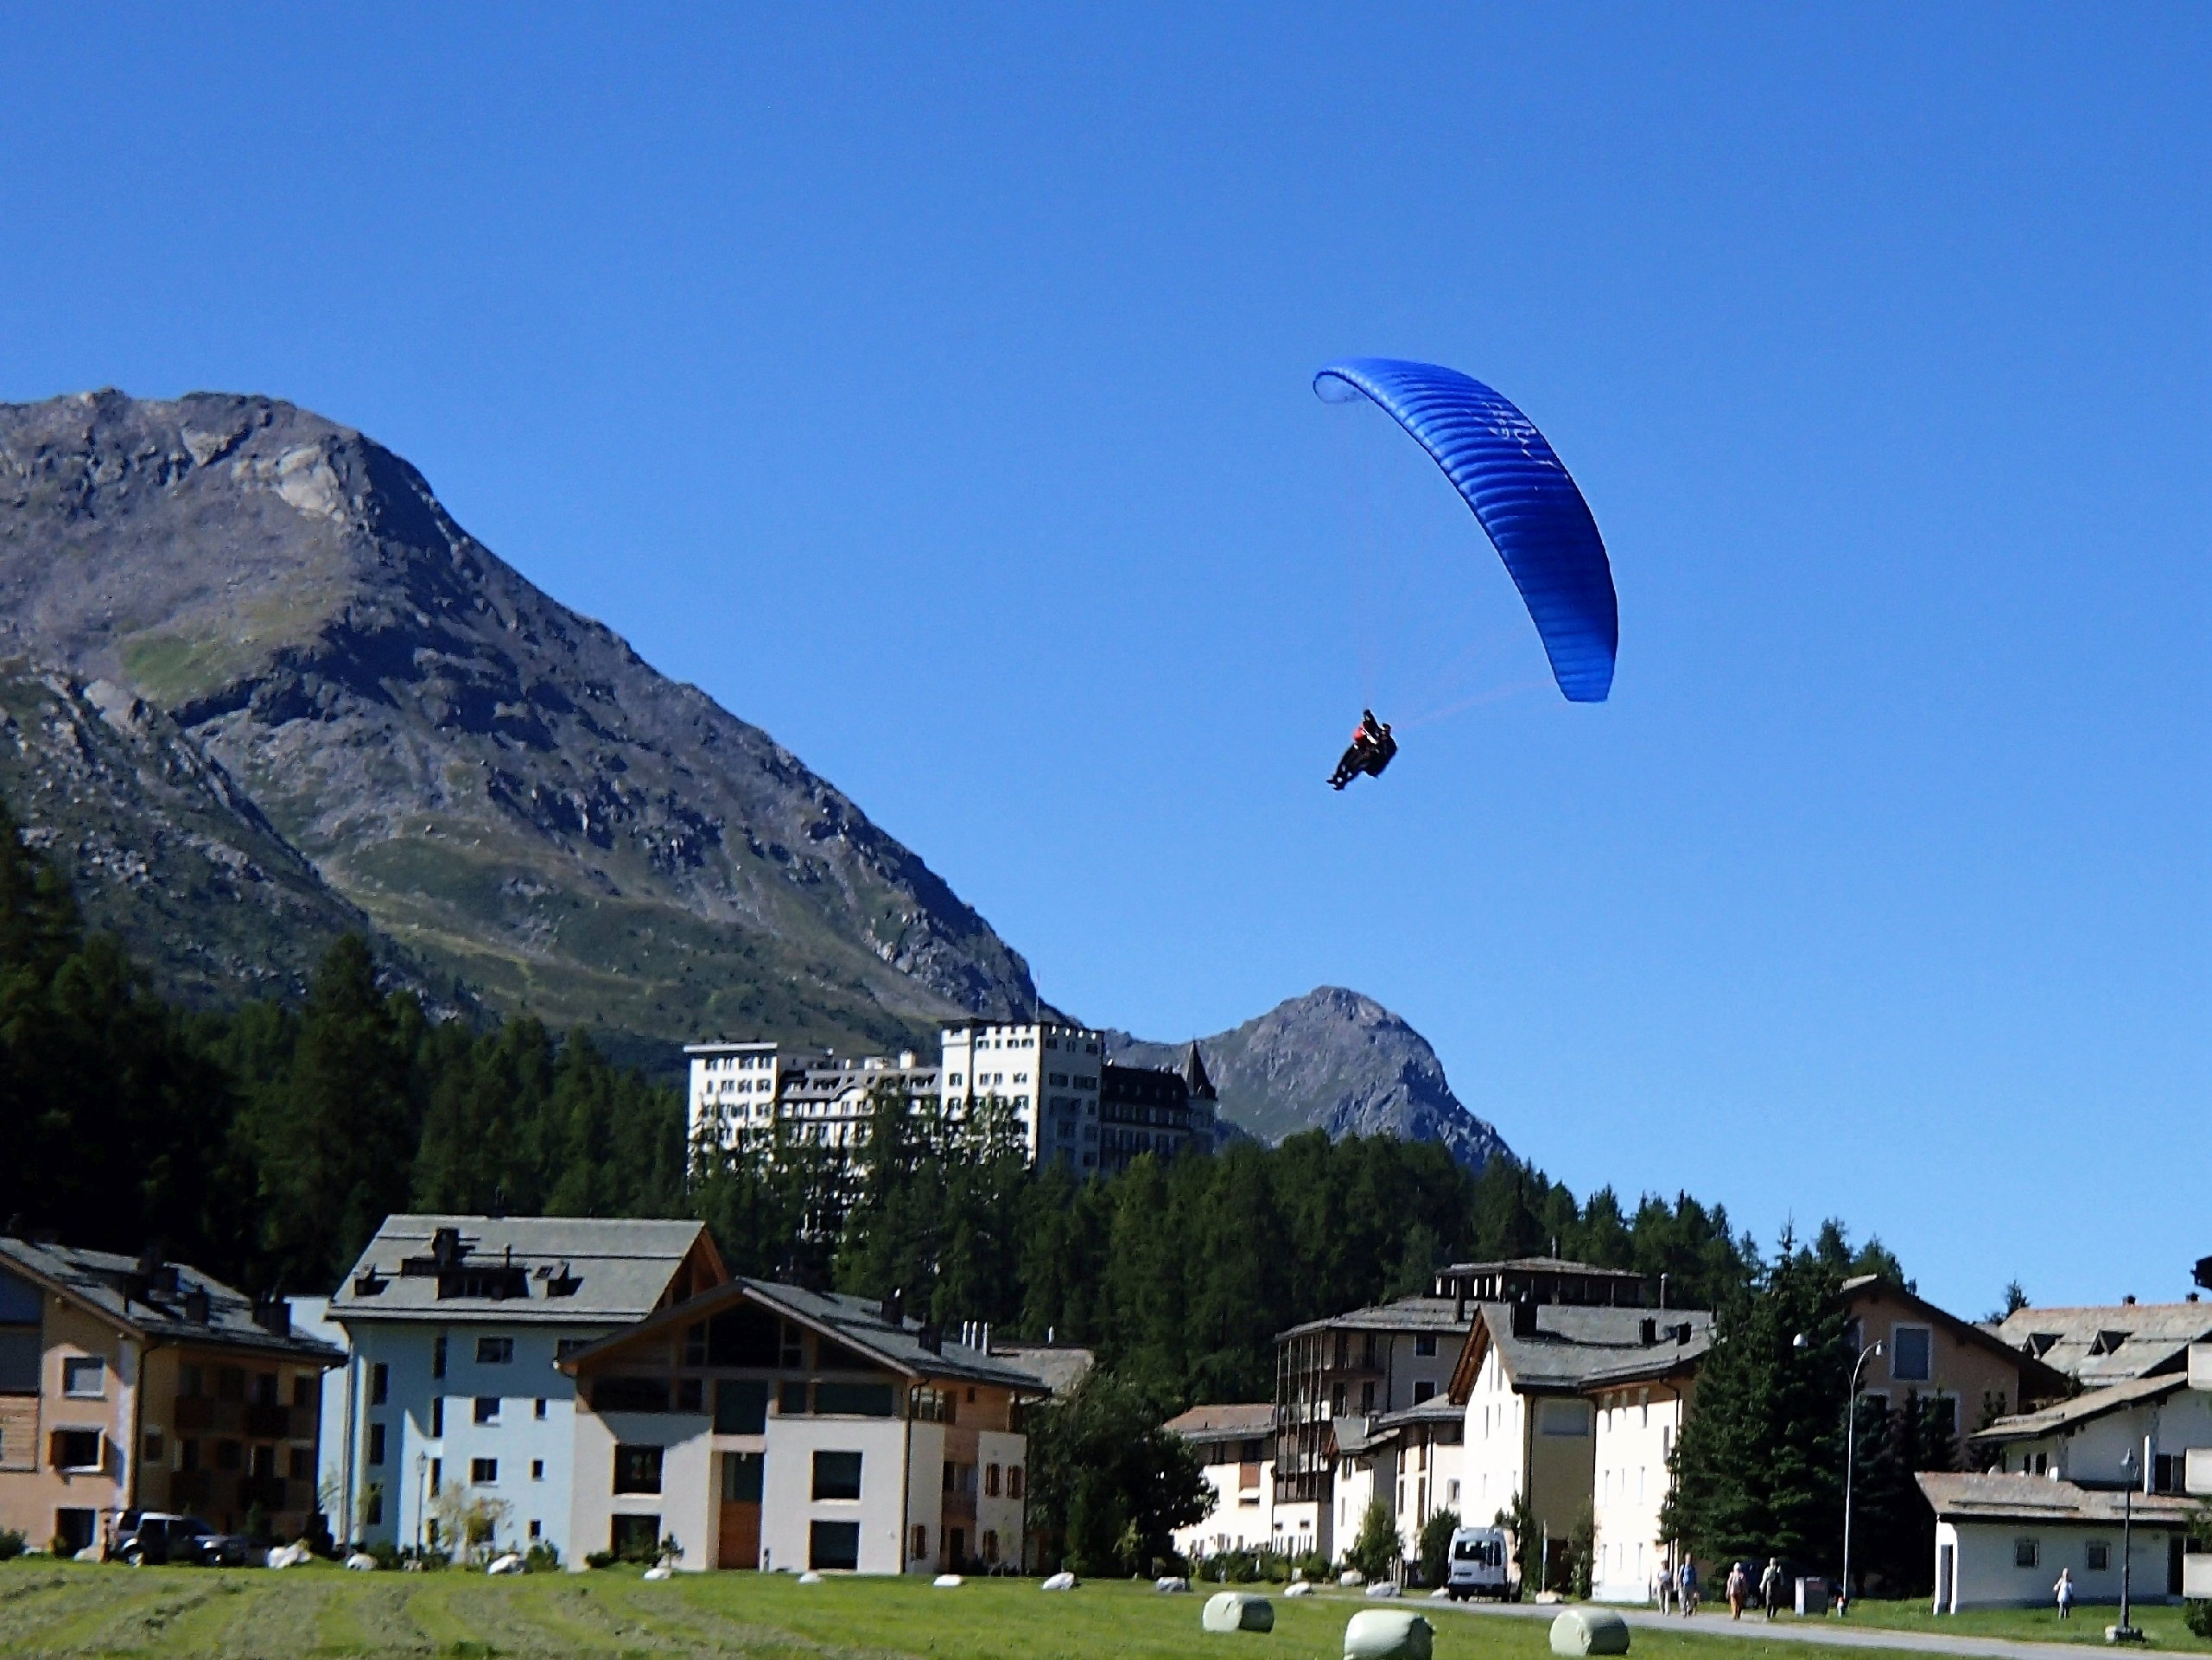 Andrea Kuhn Paragliding / Sailing / Snowkiting with passengers Slide 2